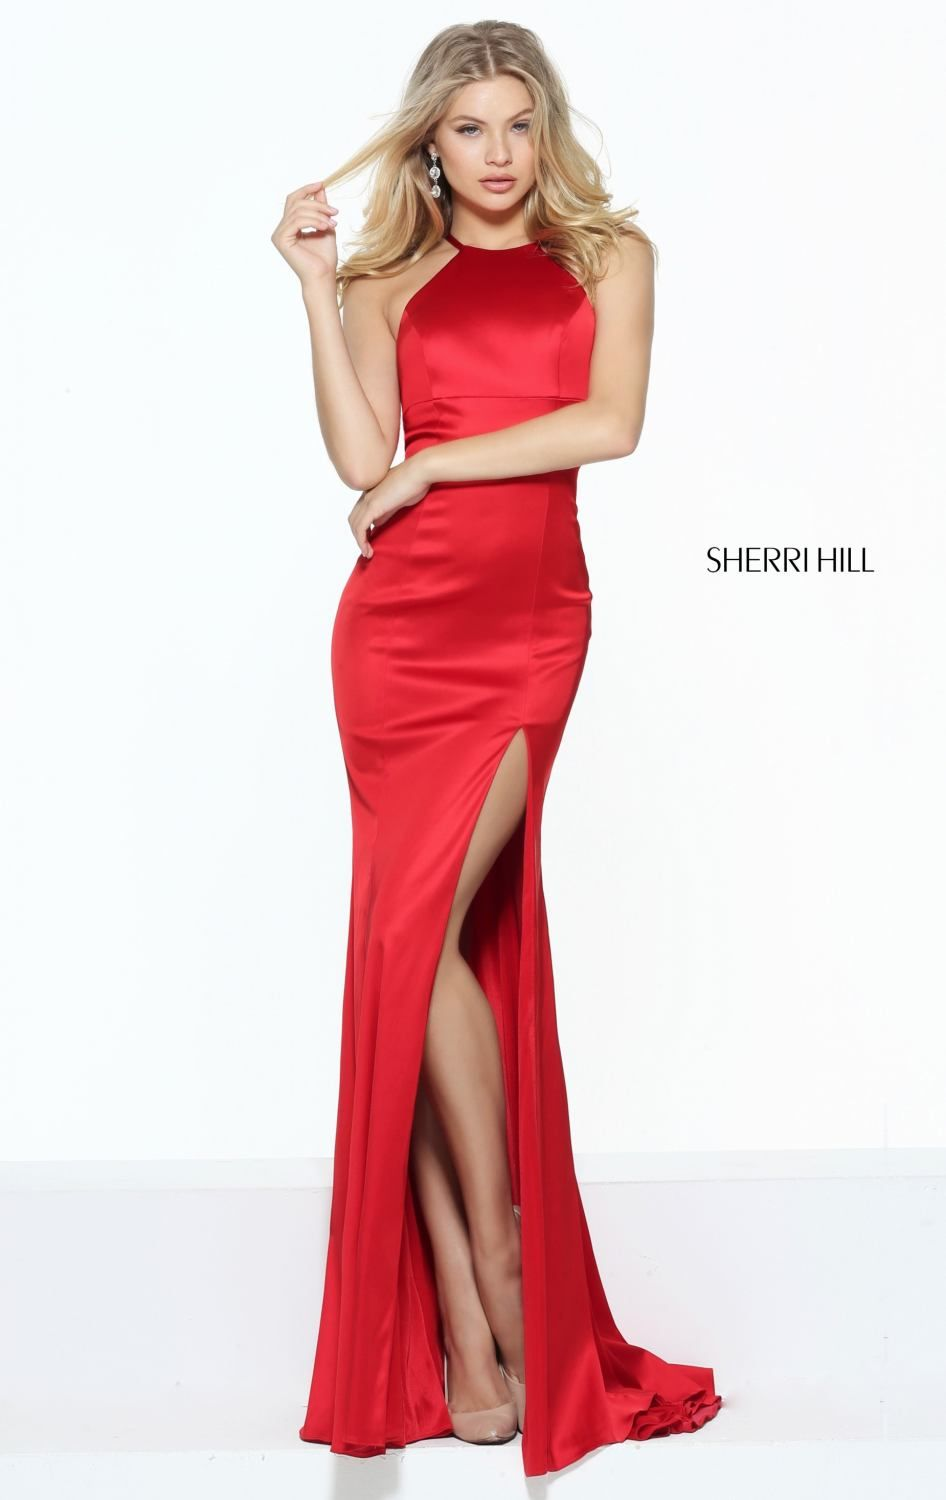 Sherri Hill 50869 Stretch Satin Red Evening Dress - Click Image to Close